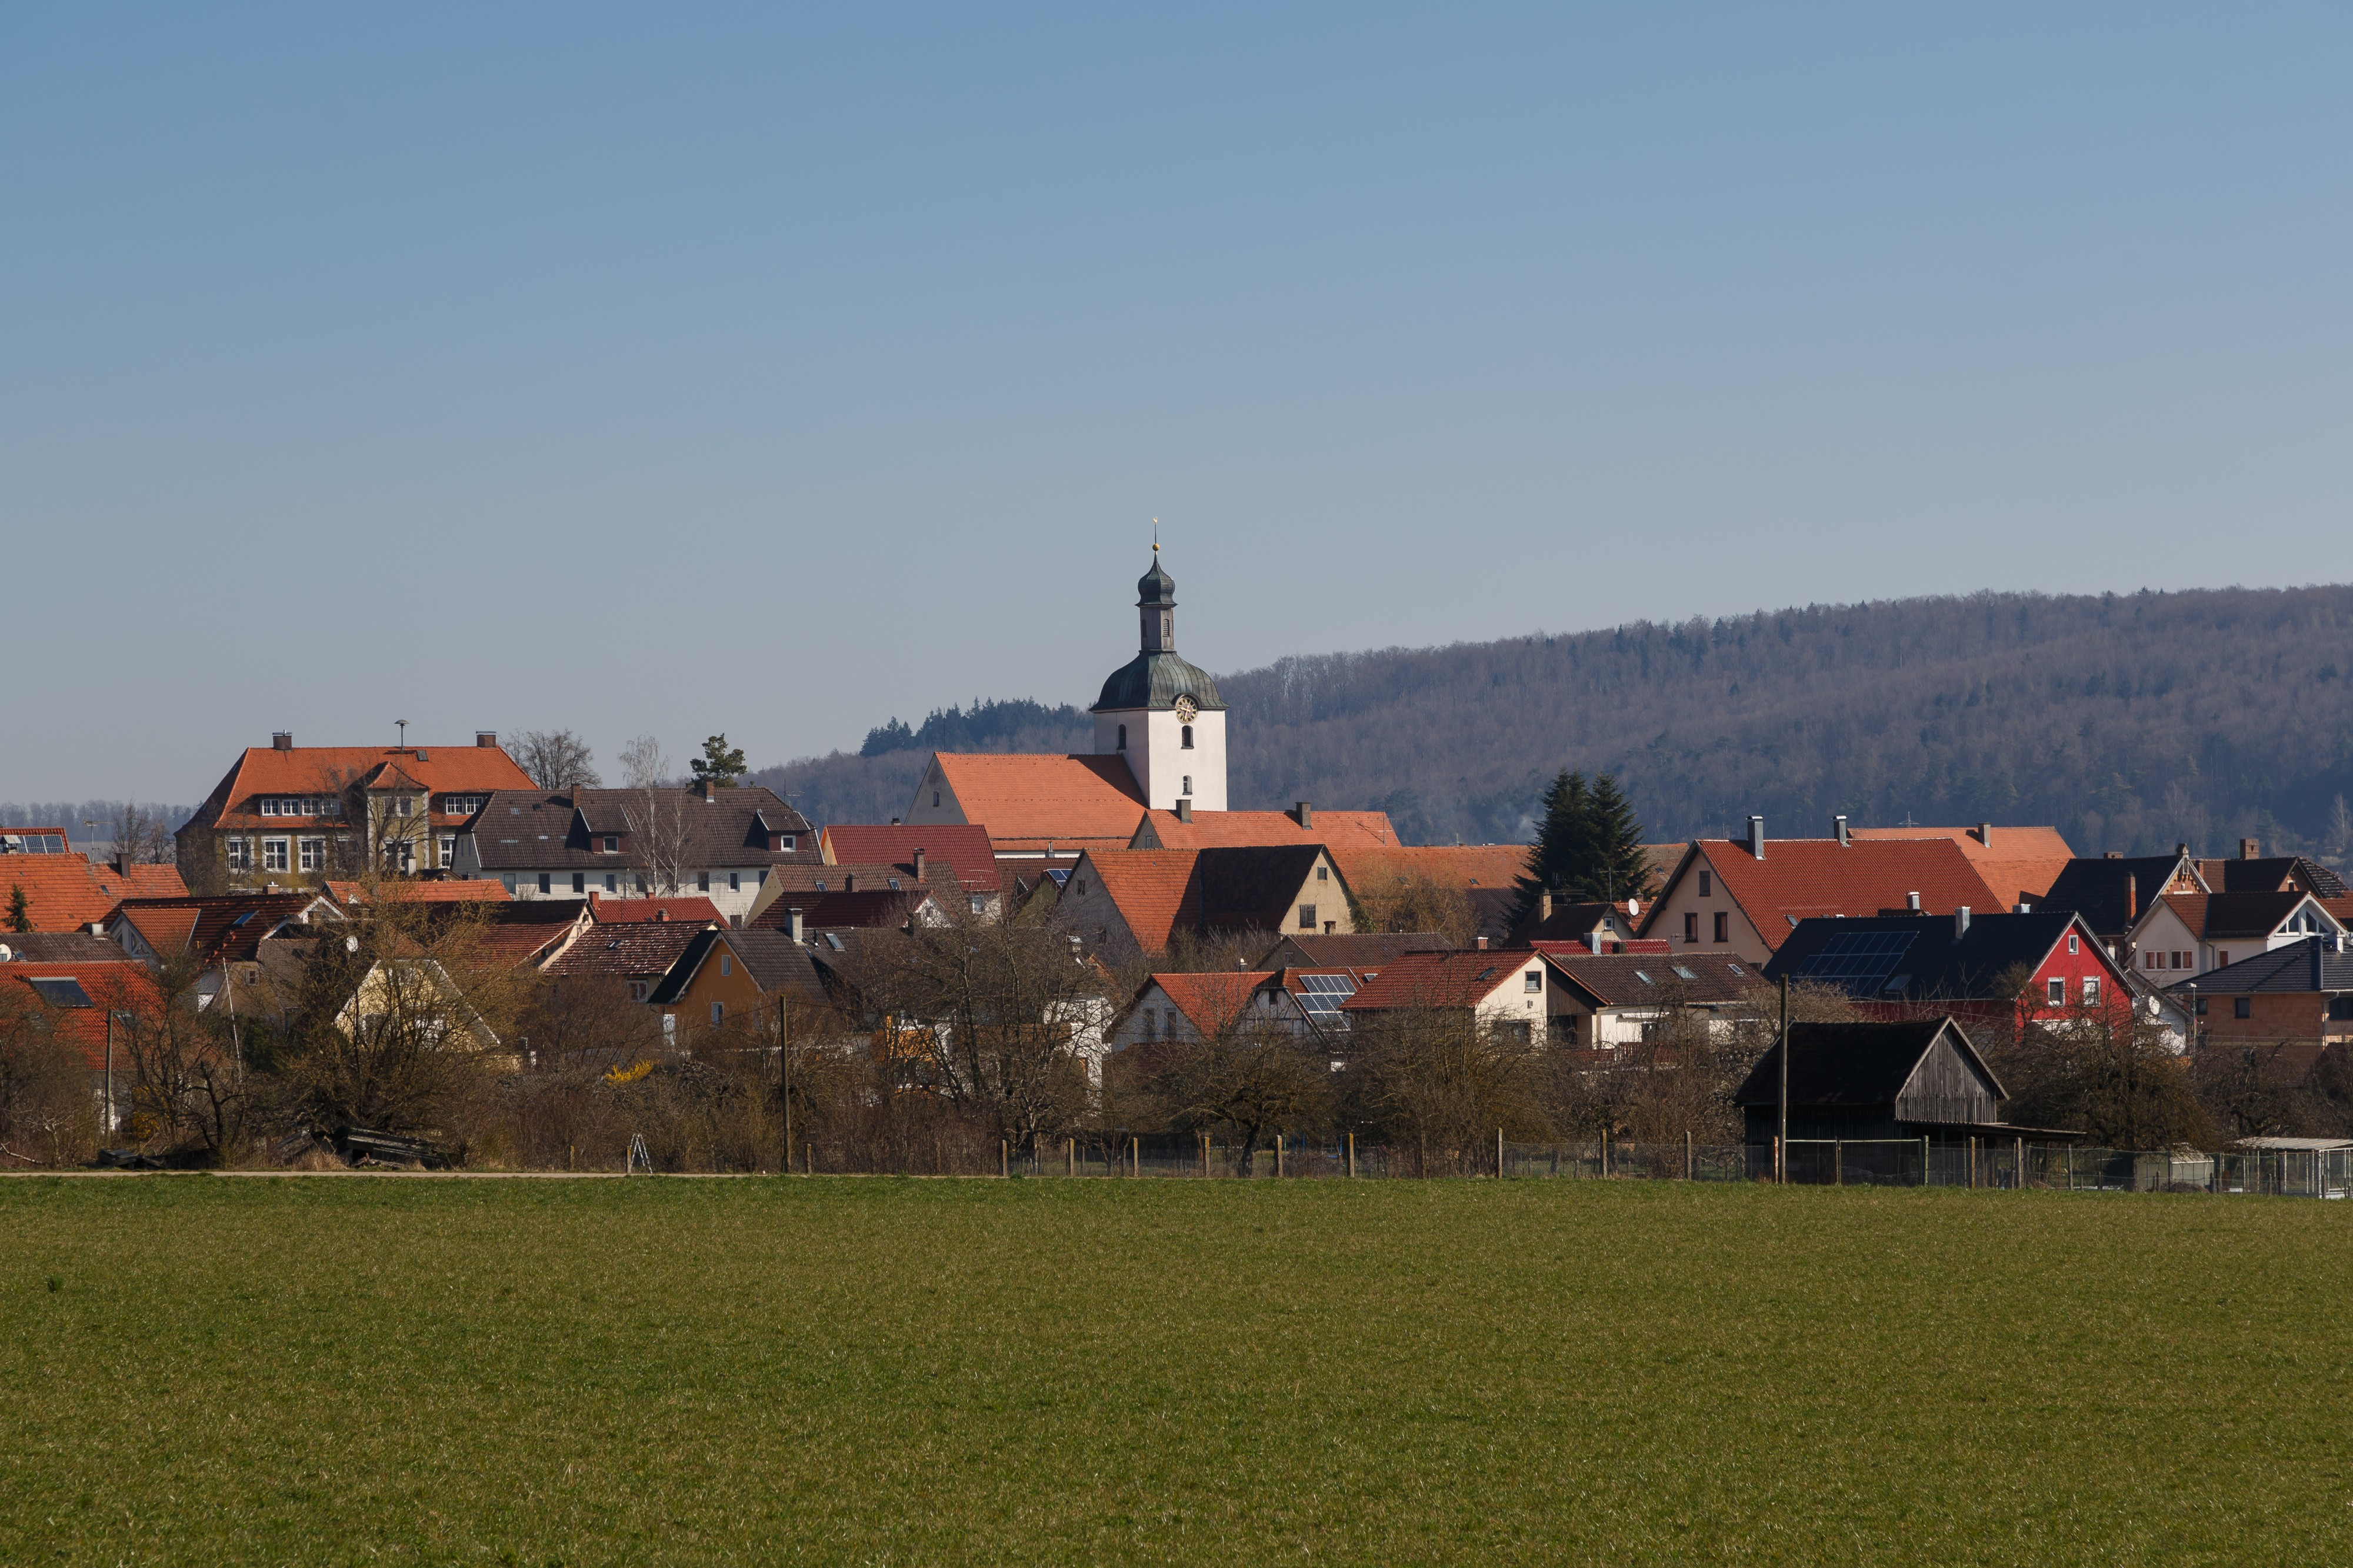 Bolheim Baden-Württemberg Germany-Village-view-from south-01